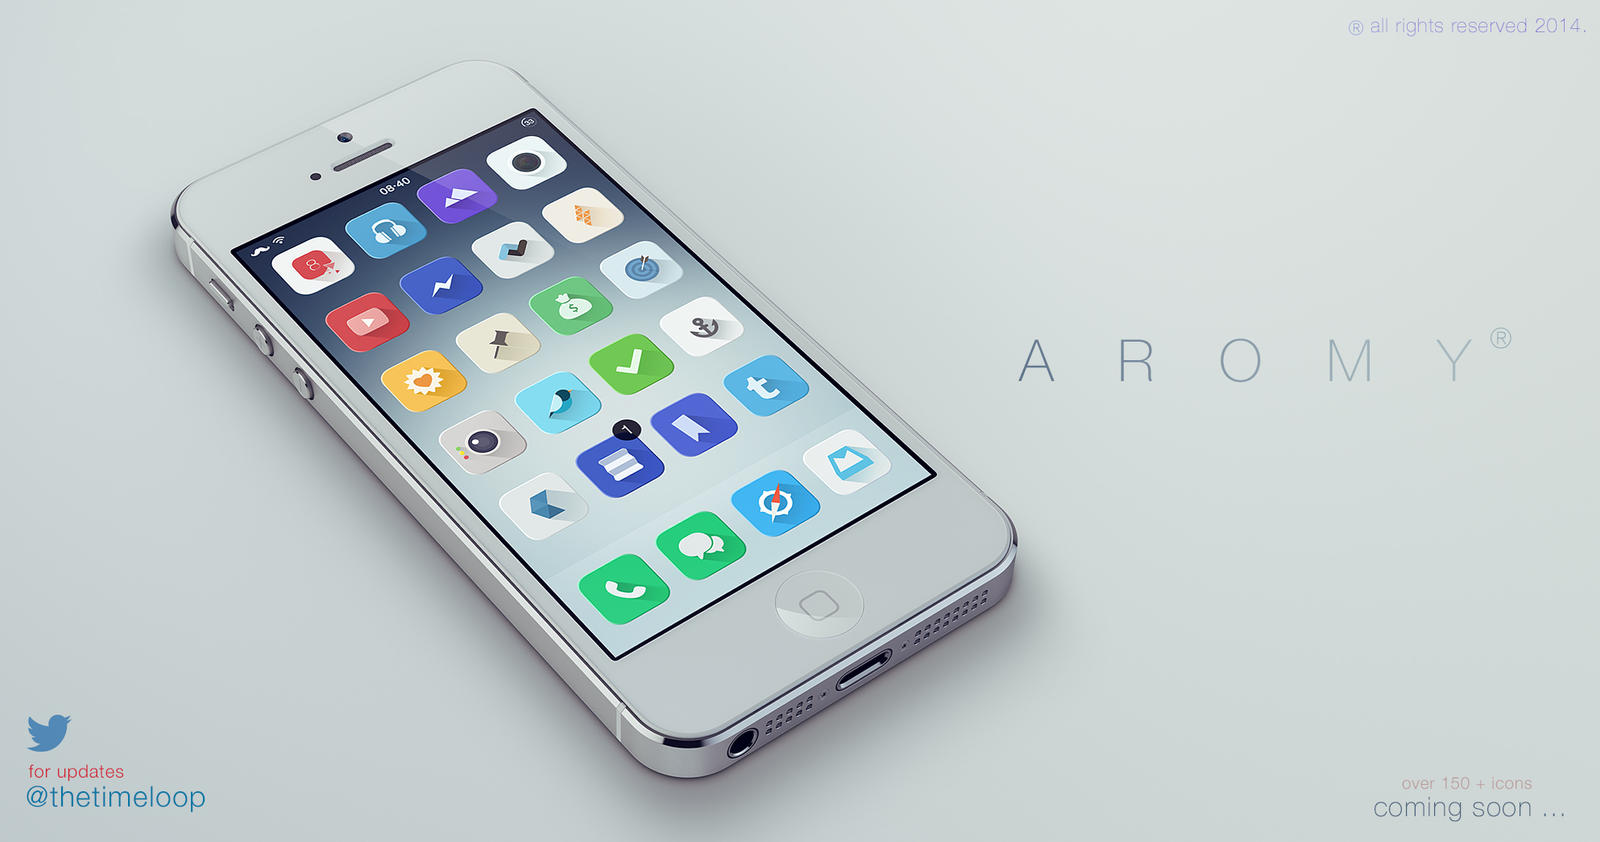 Aromy - iOS 7 Theme - LAUNCHED - by thetimeloop